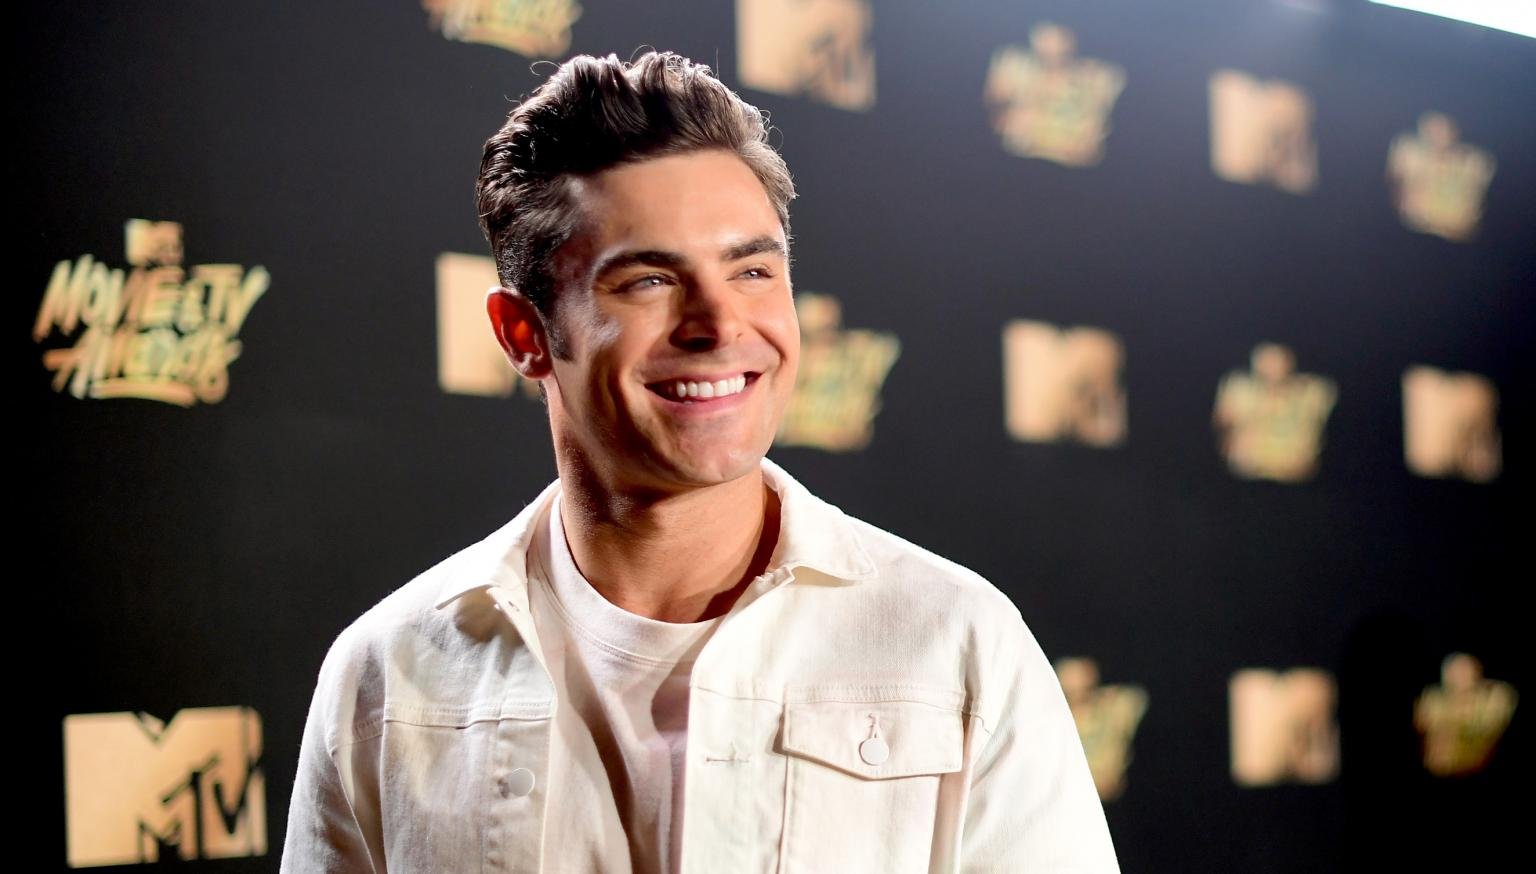 is zac efron dating neighbors costar 'neighbors' star zac efron: exclusive zac efron 'every day was a party on neighbors': photo zac efron takes a seat on is there a tv costar curse 30.